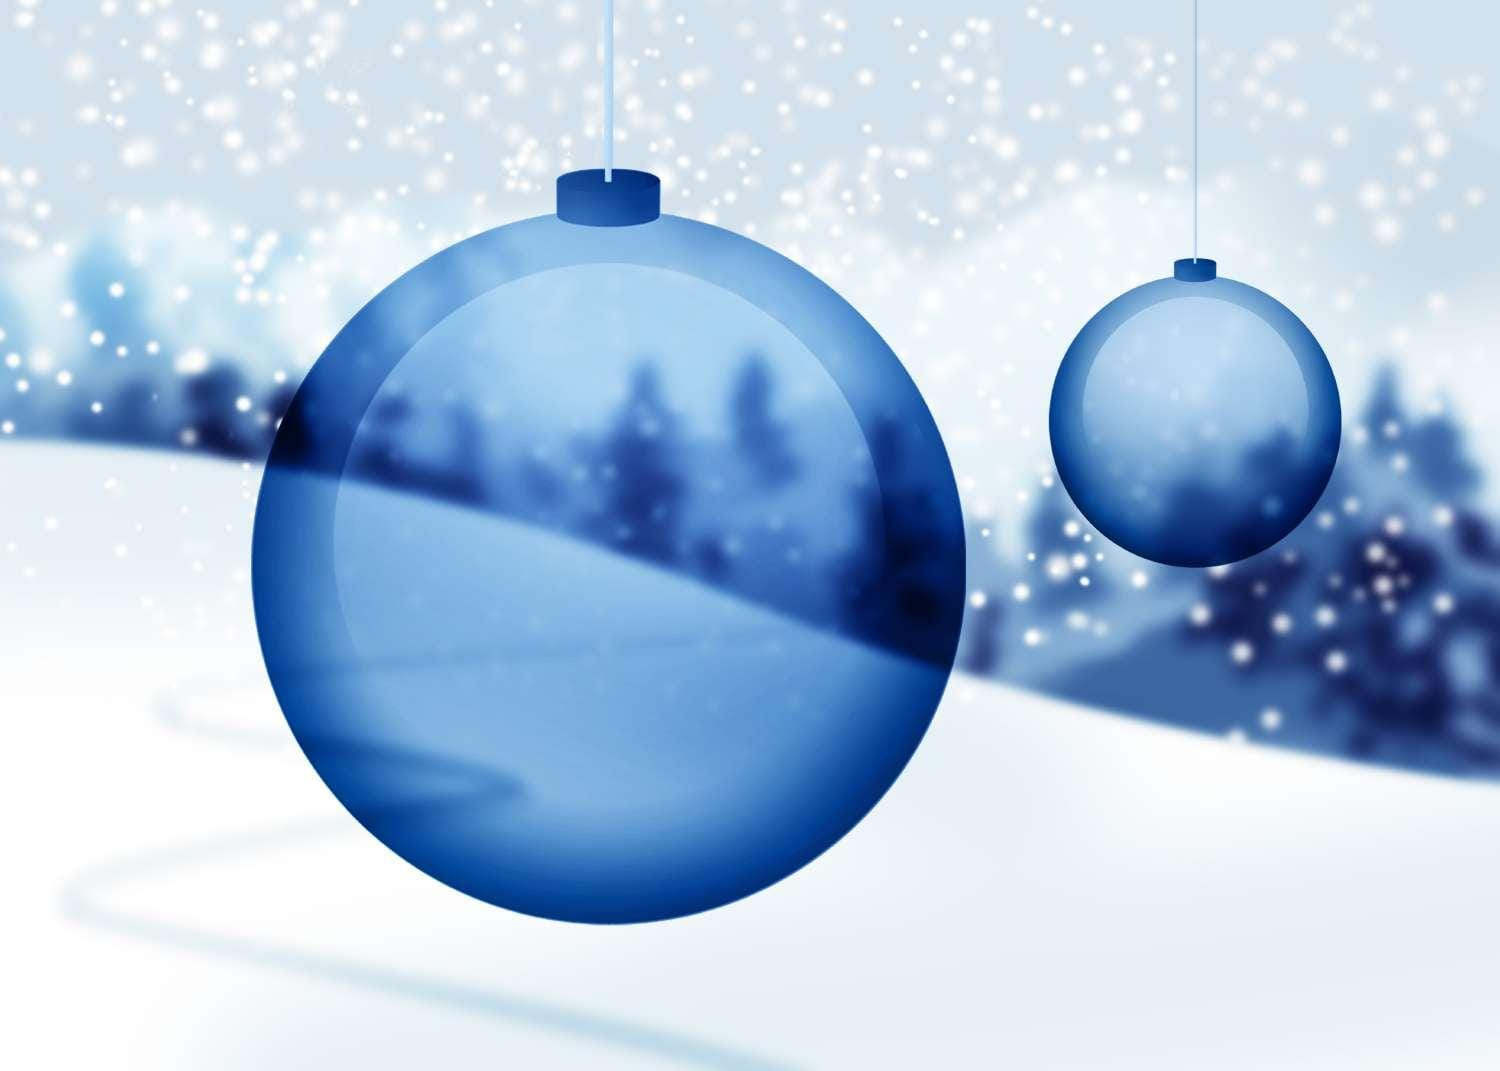 Transparent blue Christmas ornaments with snow